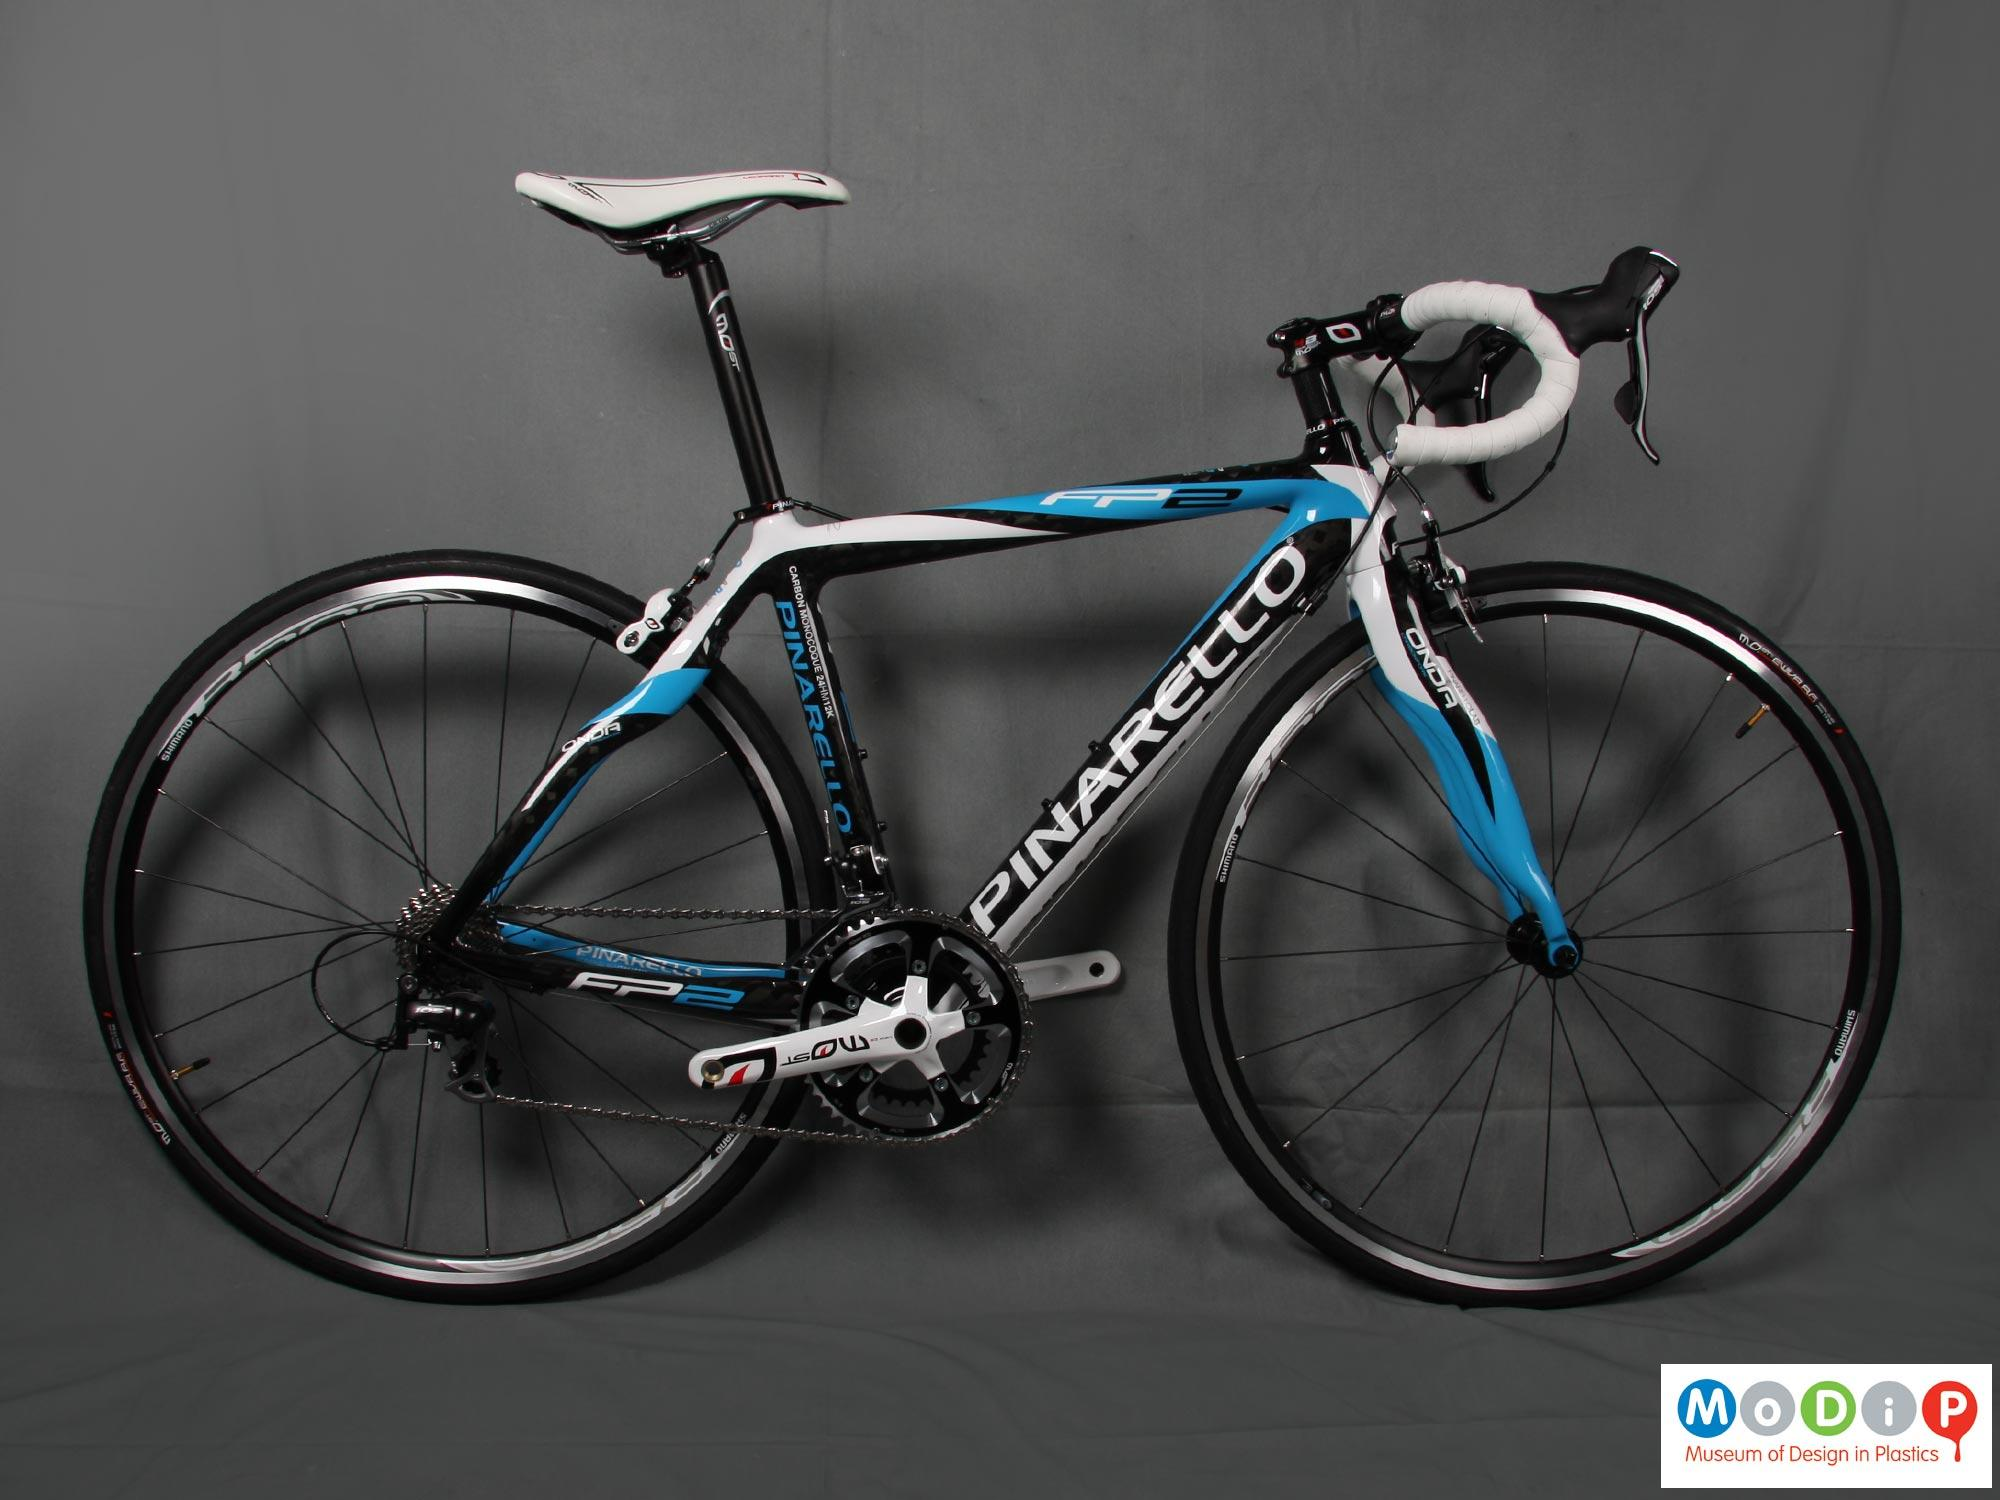 Pinarello Fp2 Carbon 105 Team Sky 2010 Bicycle Museum Of